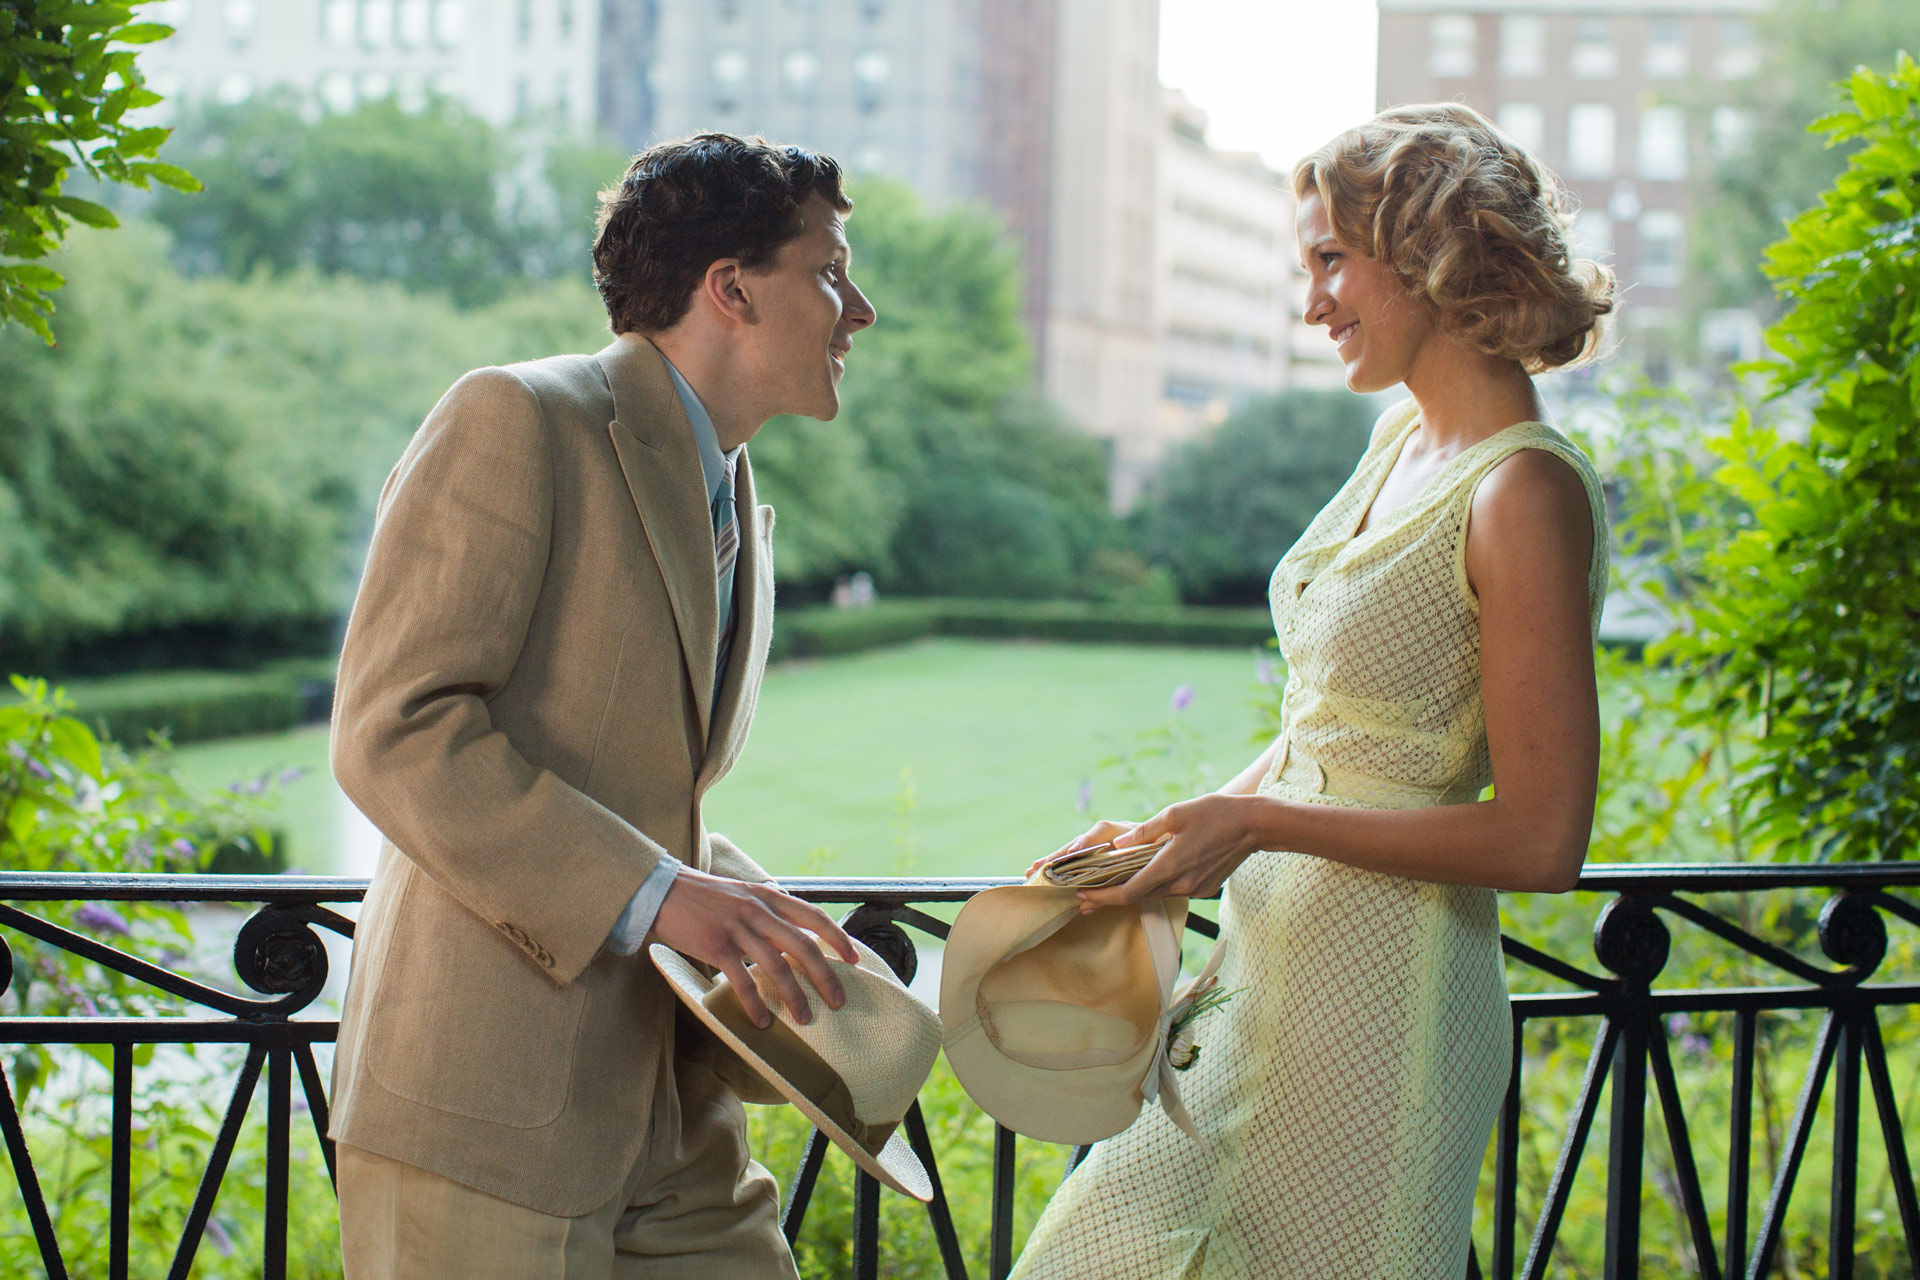 CAFÉ SOCIETY - Image 5 du film Eisenberg Kristen Stewart Woody Allen - Go with the Blog (2)